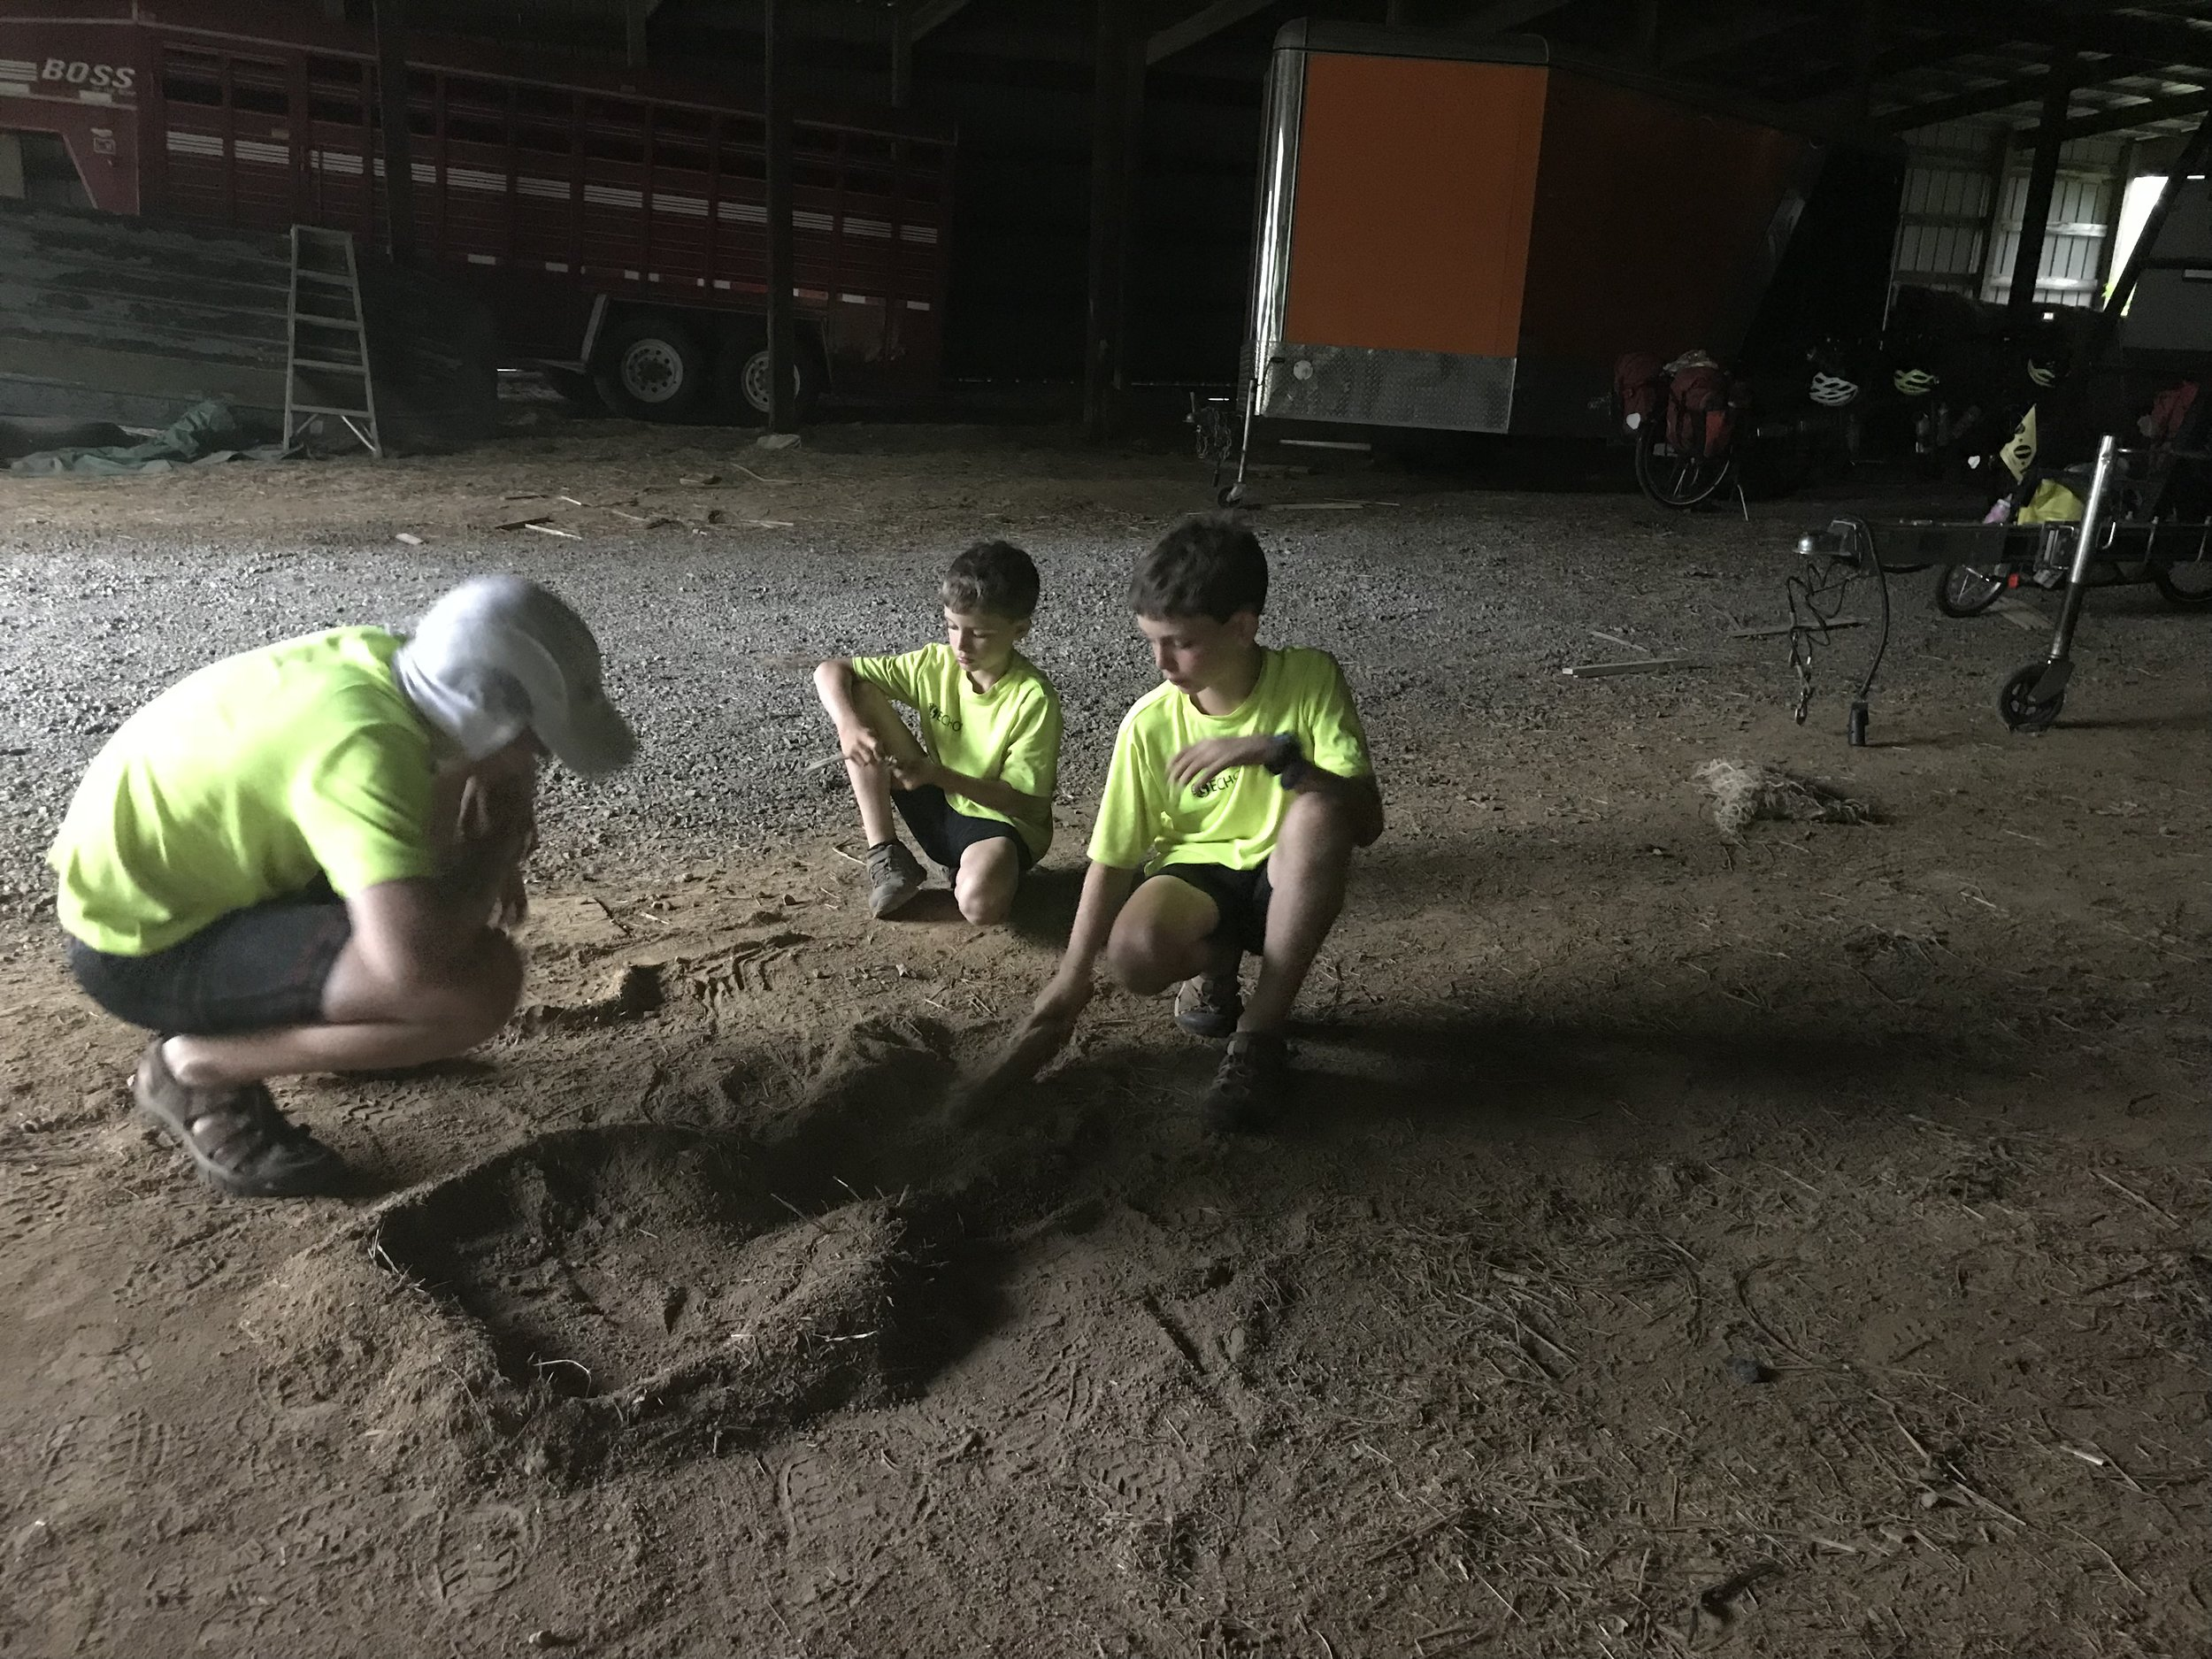 Here are the boys making forts in the dirt. They came up with their own game, which involved destroying each other's forts in a systematic way, and then we had to vote on whose fort was most destroyed based on its original condition. The things that amuse boys!!